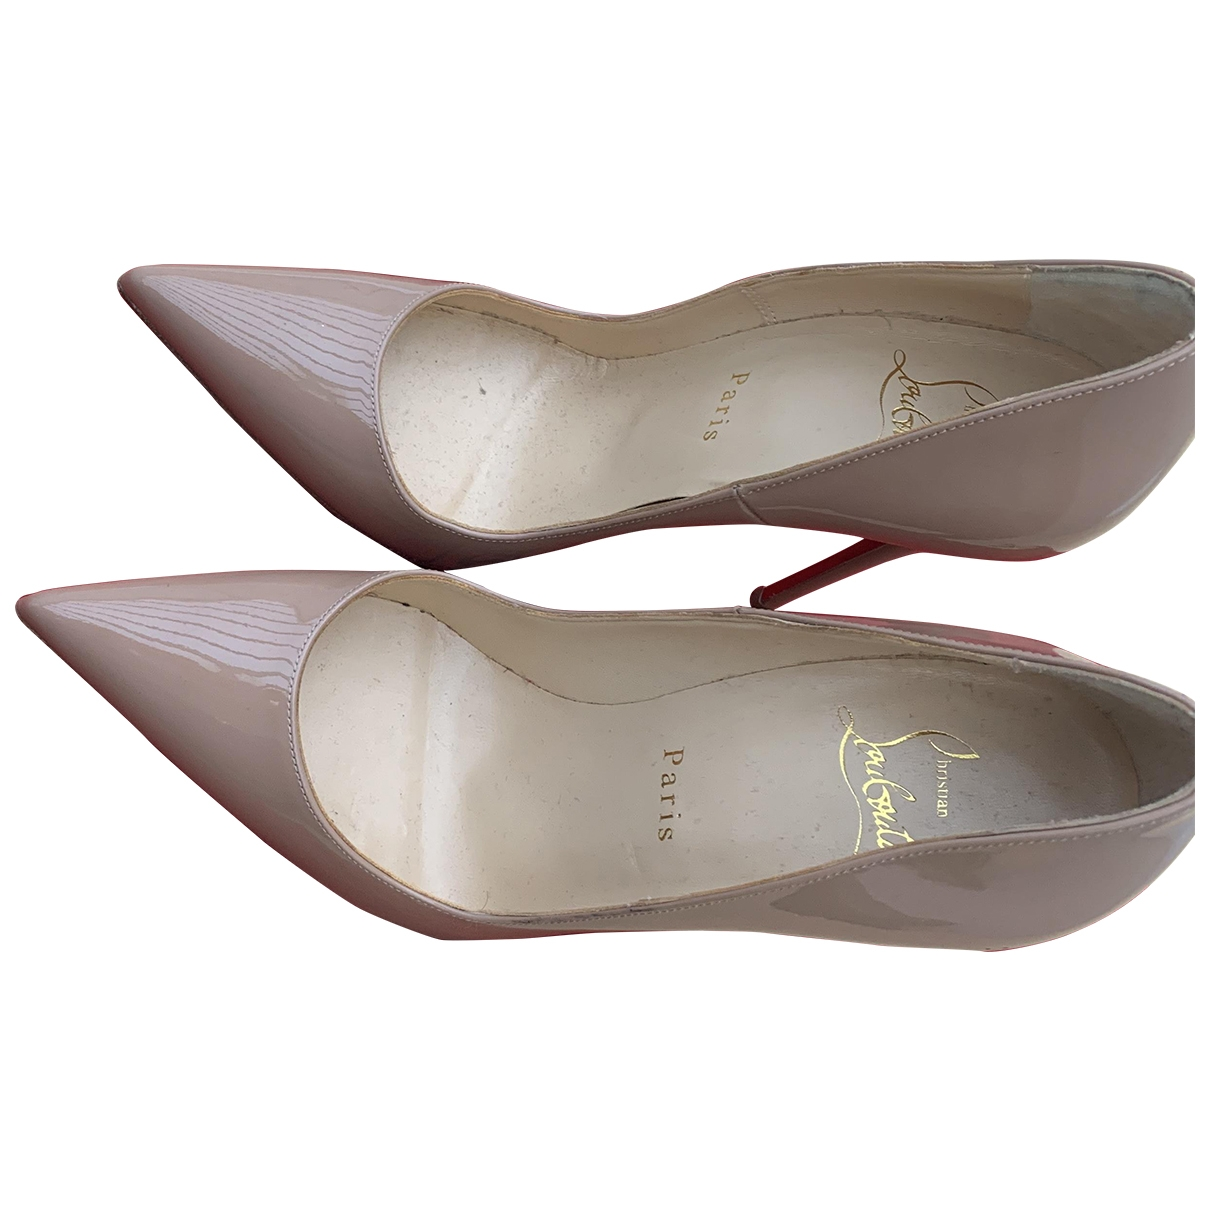 Christian Louboutin Pigalle Beige Patent leather Heels for Women 36.5 EU